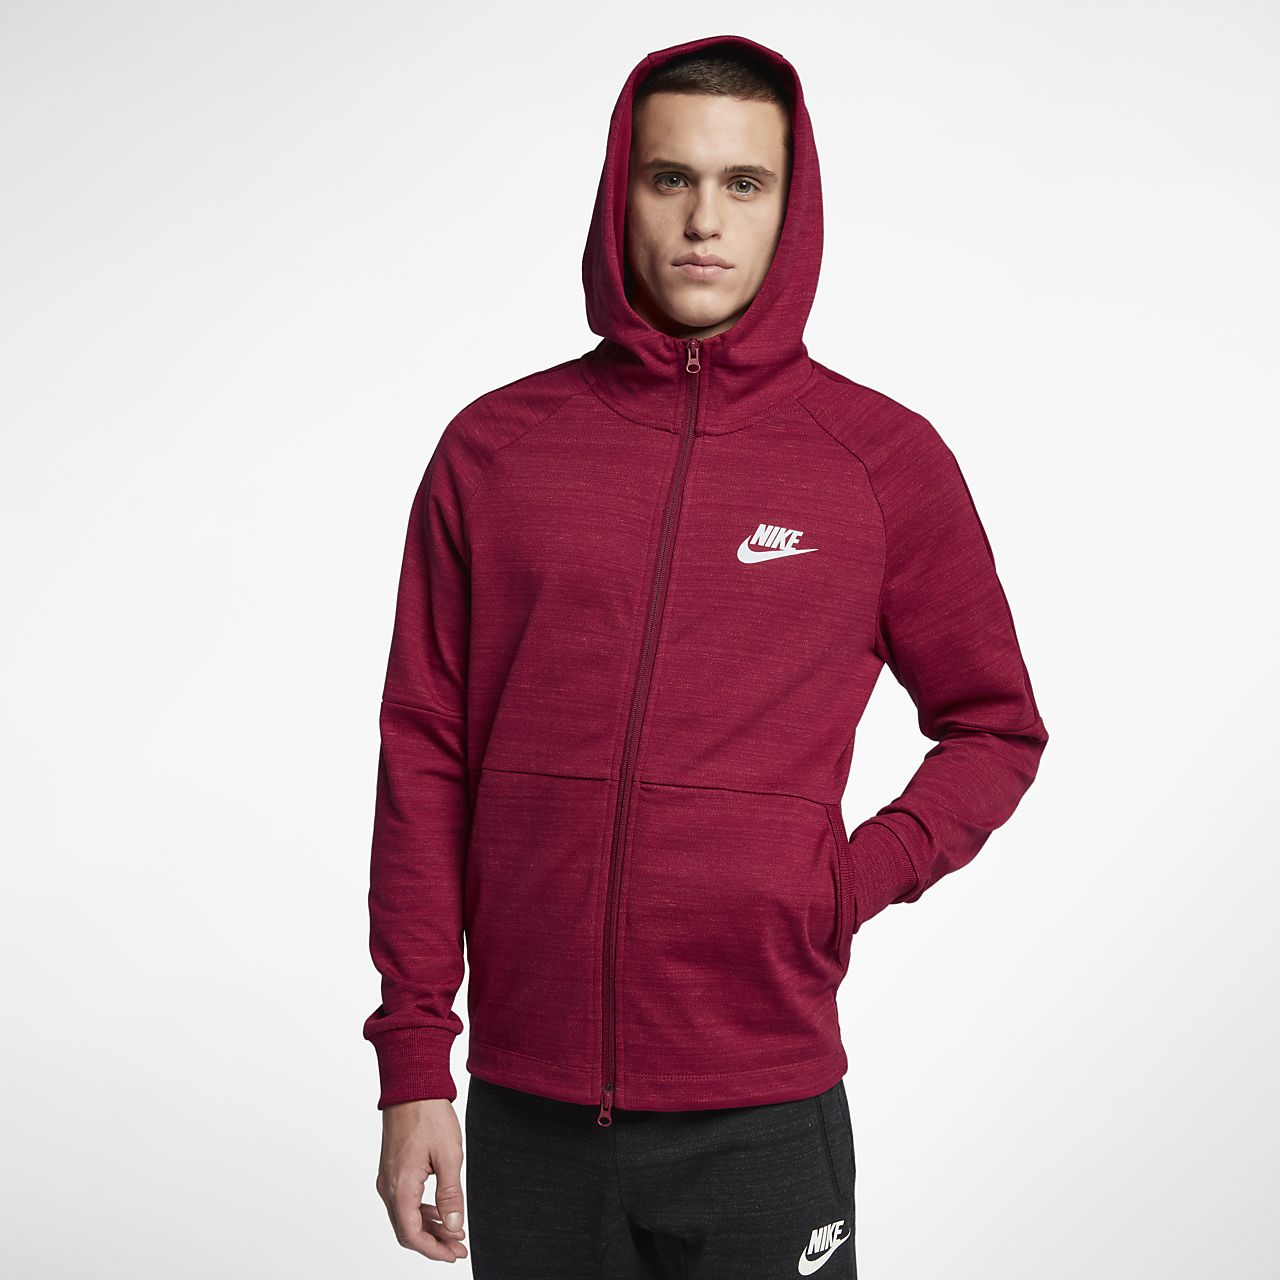 sweat capuche enti rement zipp nike sportswear advance 15 pour homme lu. Black Bedroom Furniture Sets. Home Design Ideas